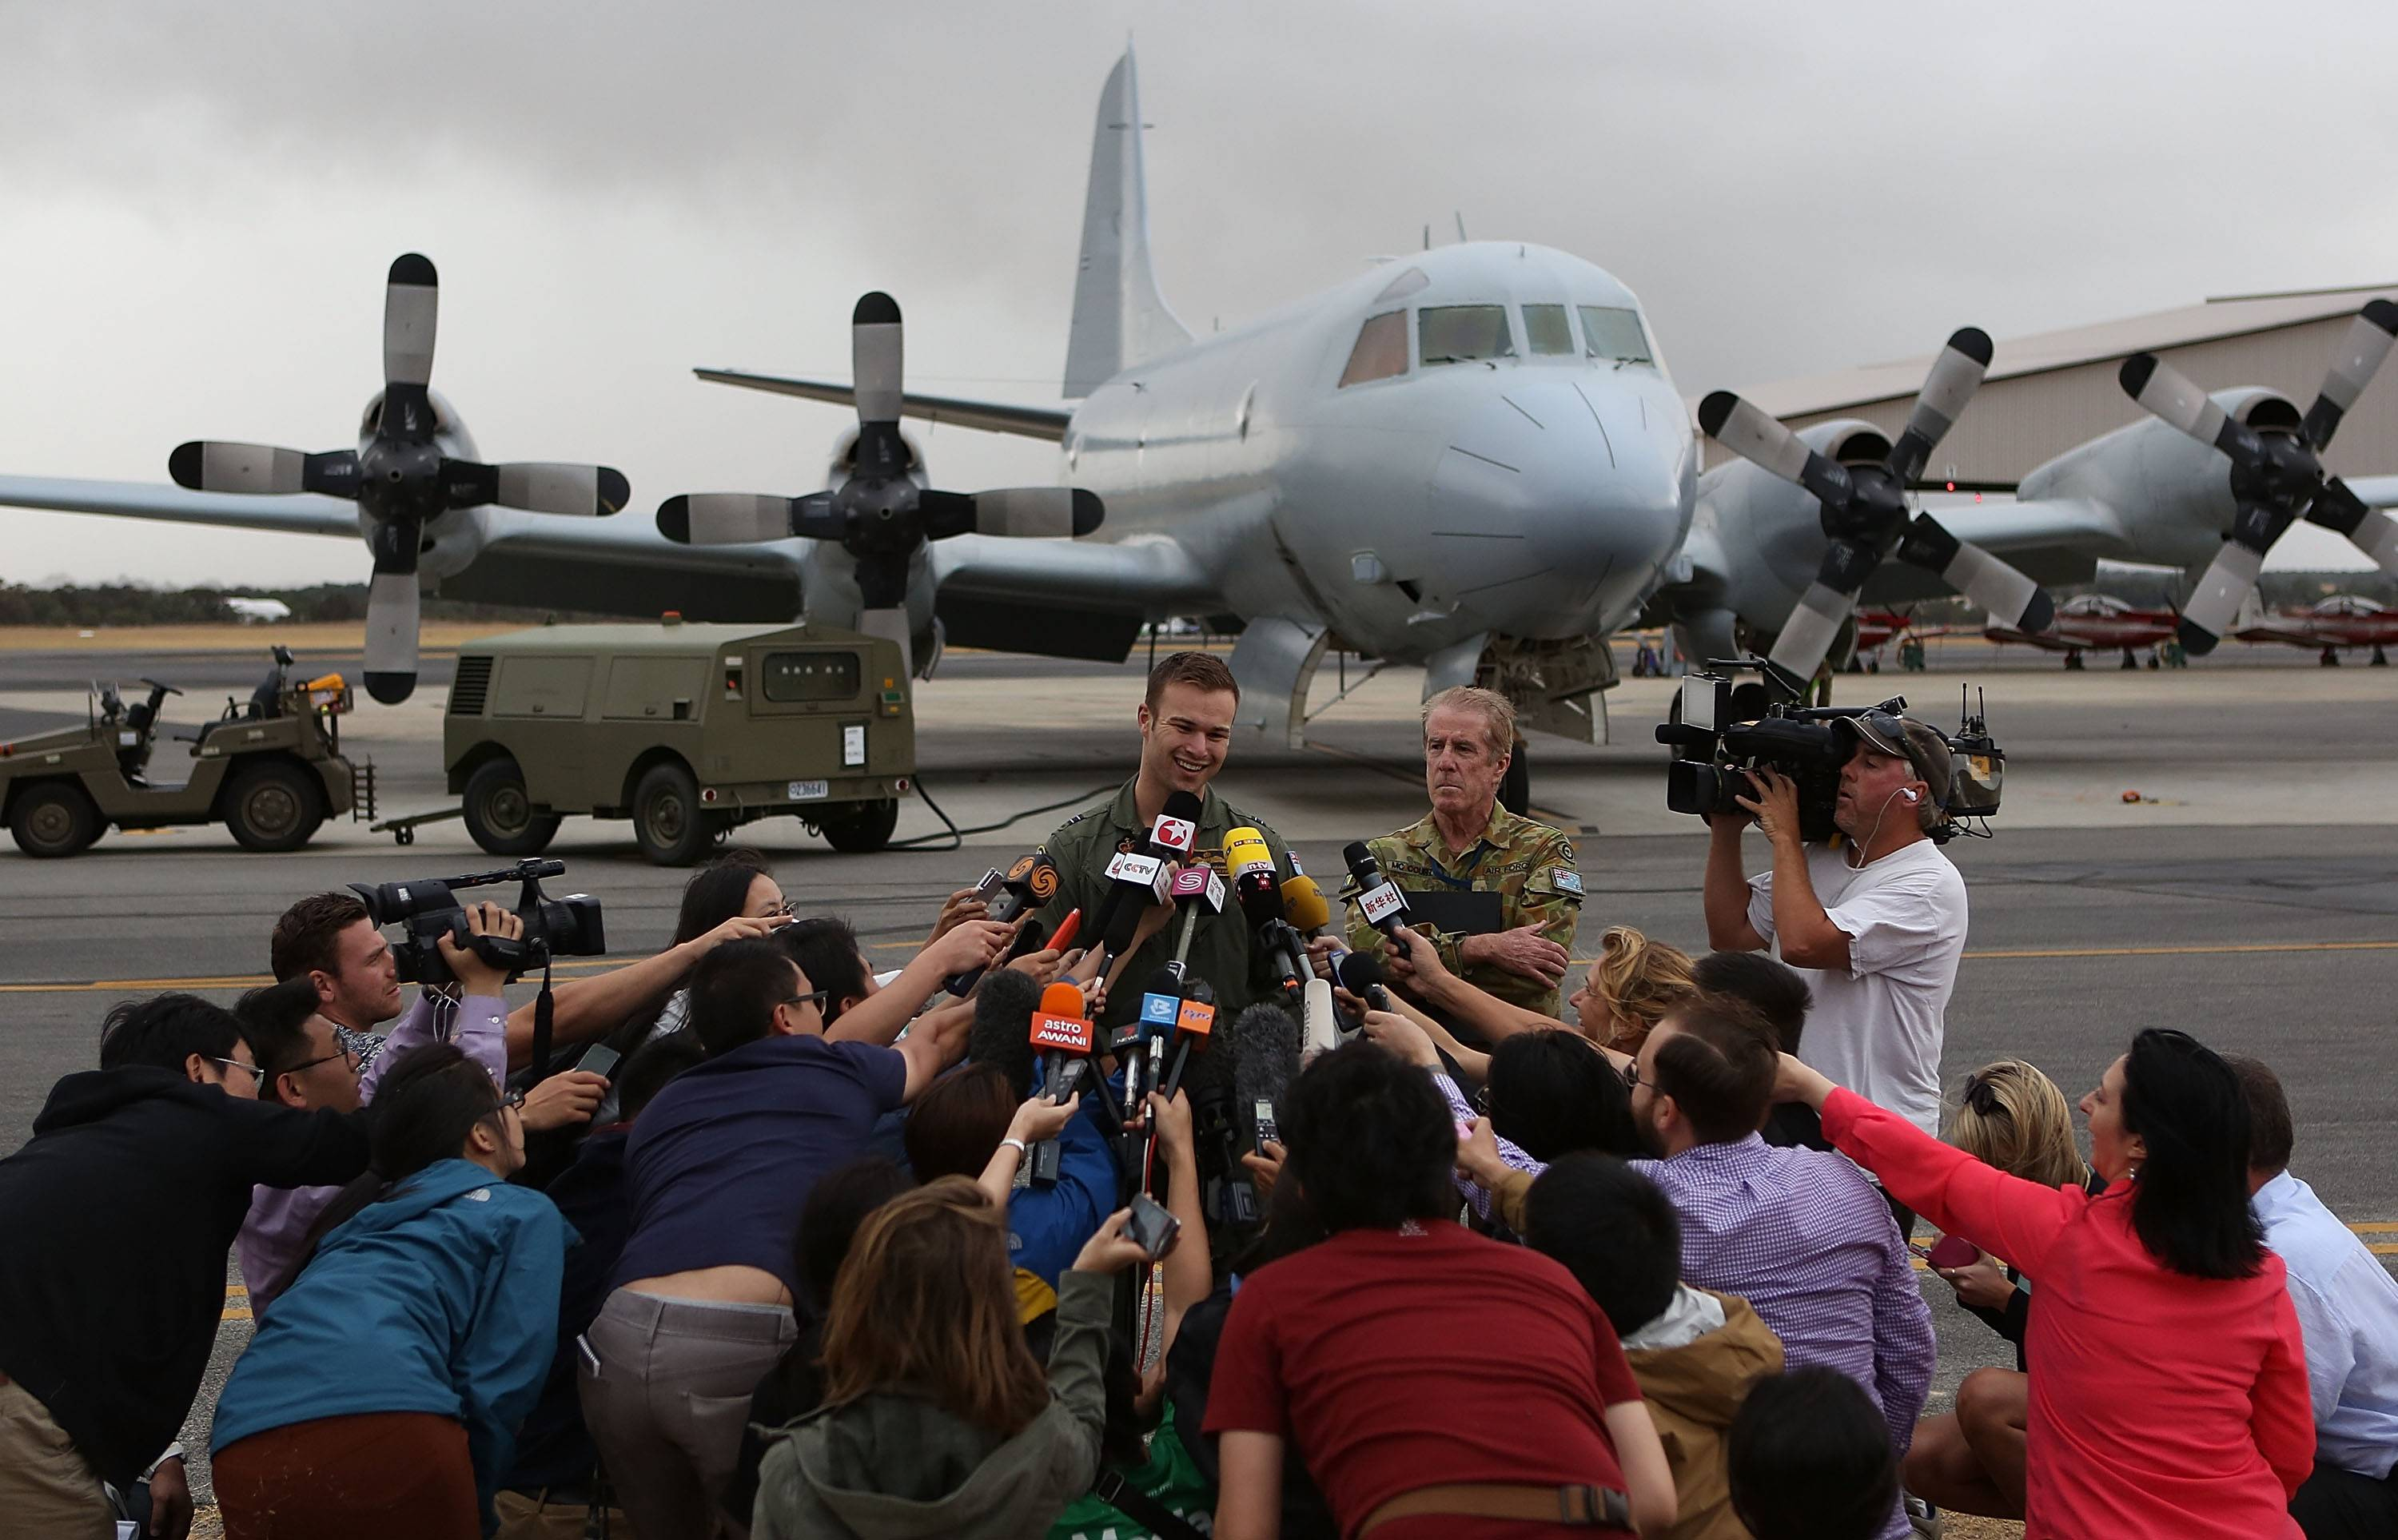 Royal Australian Air Force Flight Lt. Russell Adams speaks to media at Pearce Airbase Saturday, March 29, in Perth, Australia. Five search aircraft yesterday spotted possible debris in the new search area for flight MH370 west of Perth. The Malaysian airliner disappeared on March 8 with 239 passengers and crew on board and is suspected to have crashed into the southern Indian Ocean.